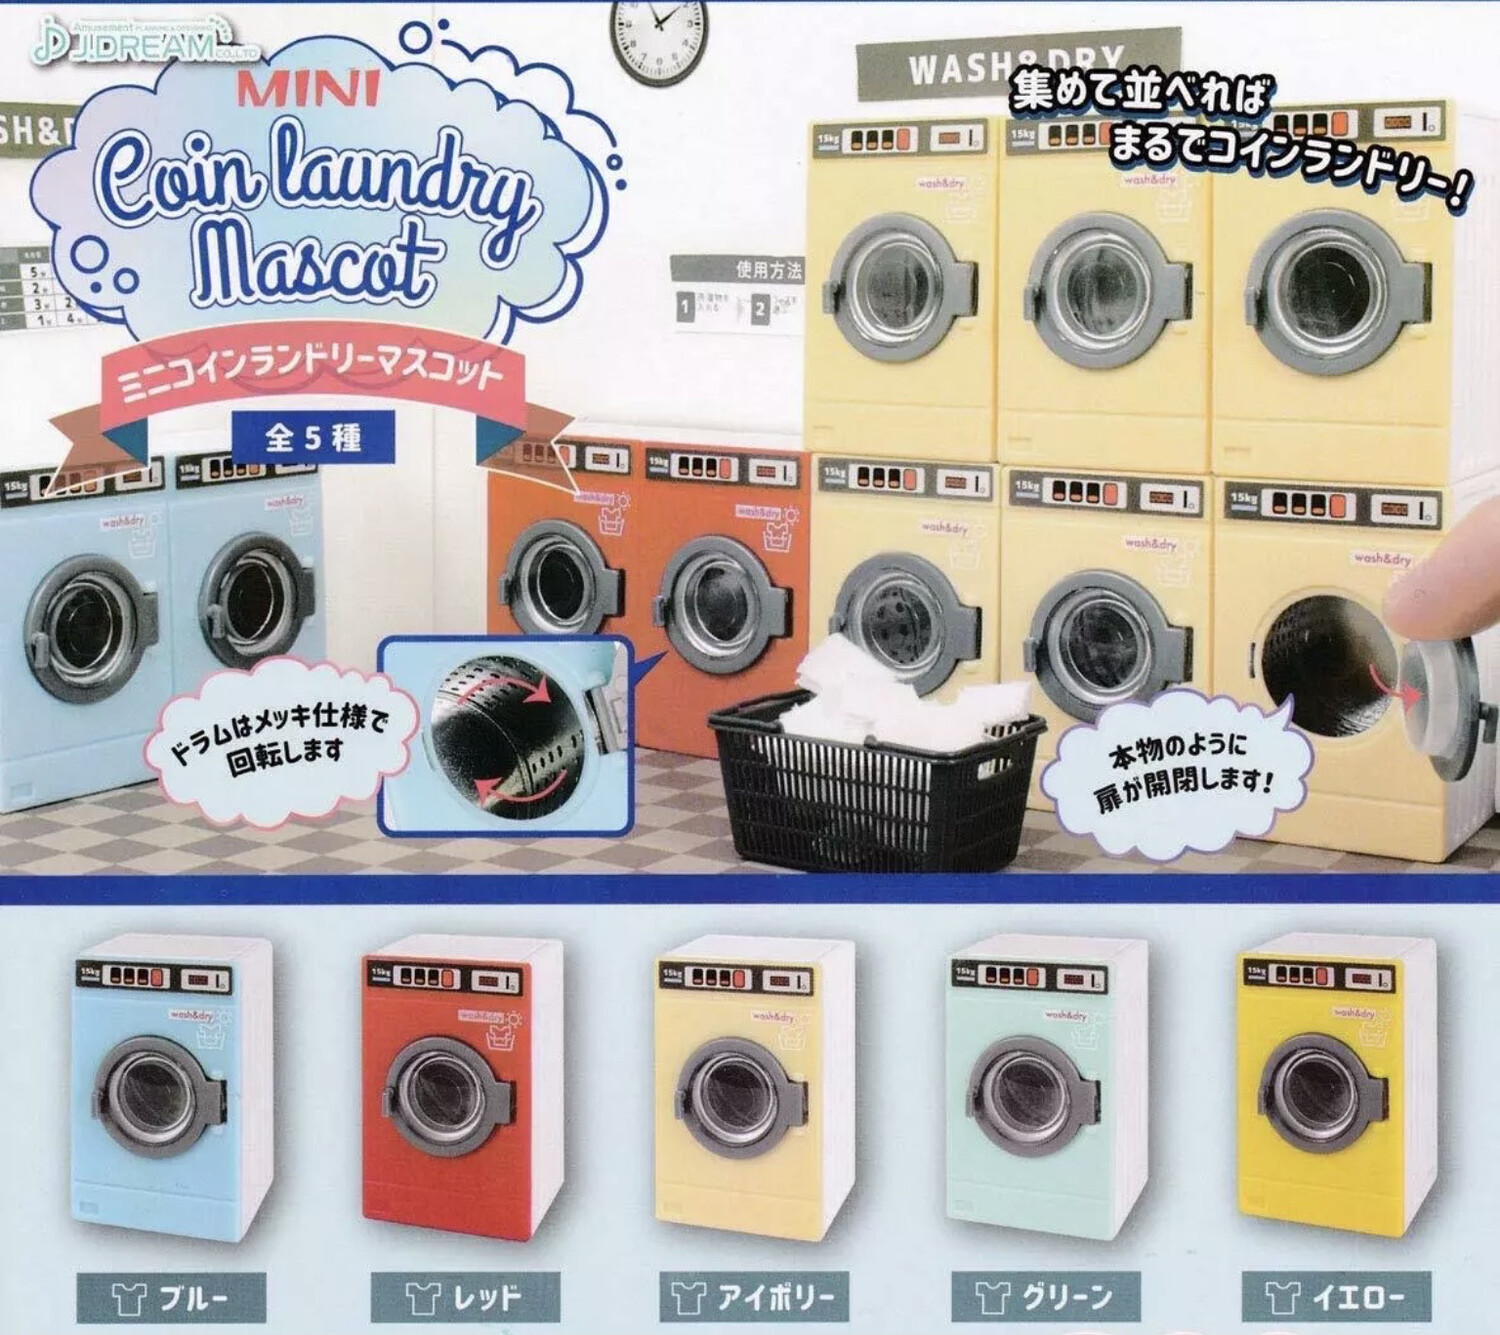 J. Dream  Coin Laundry Washer Miniature